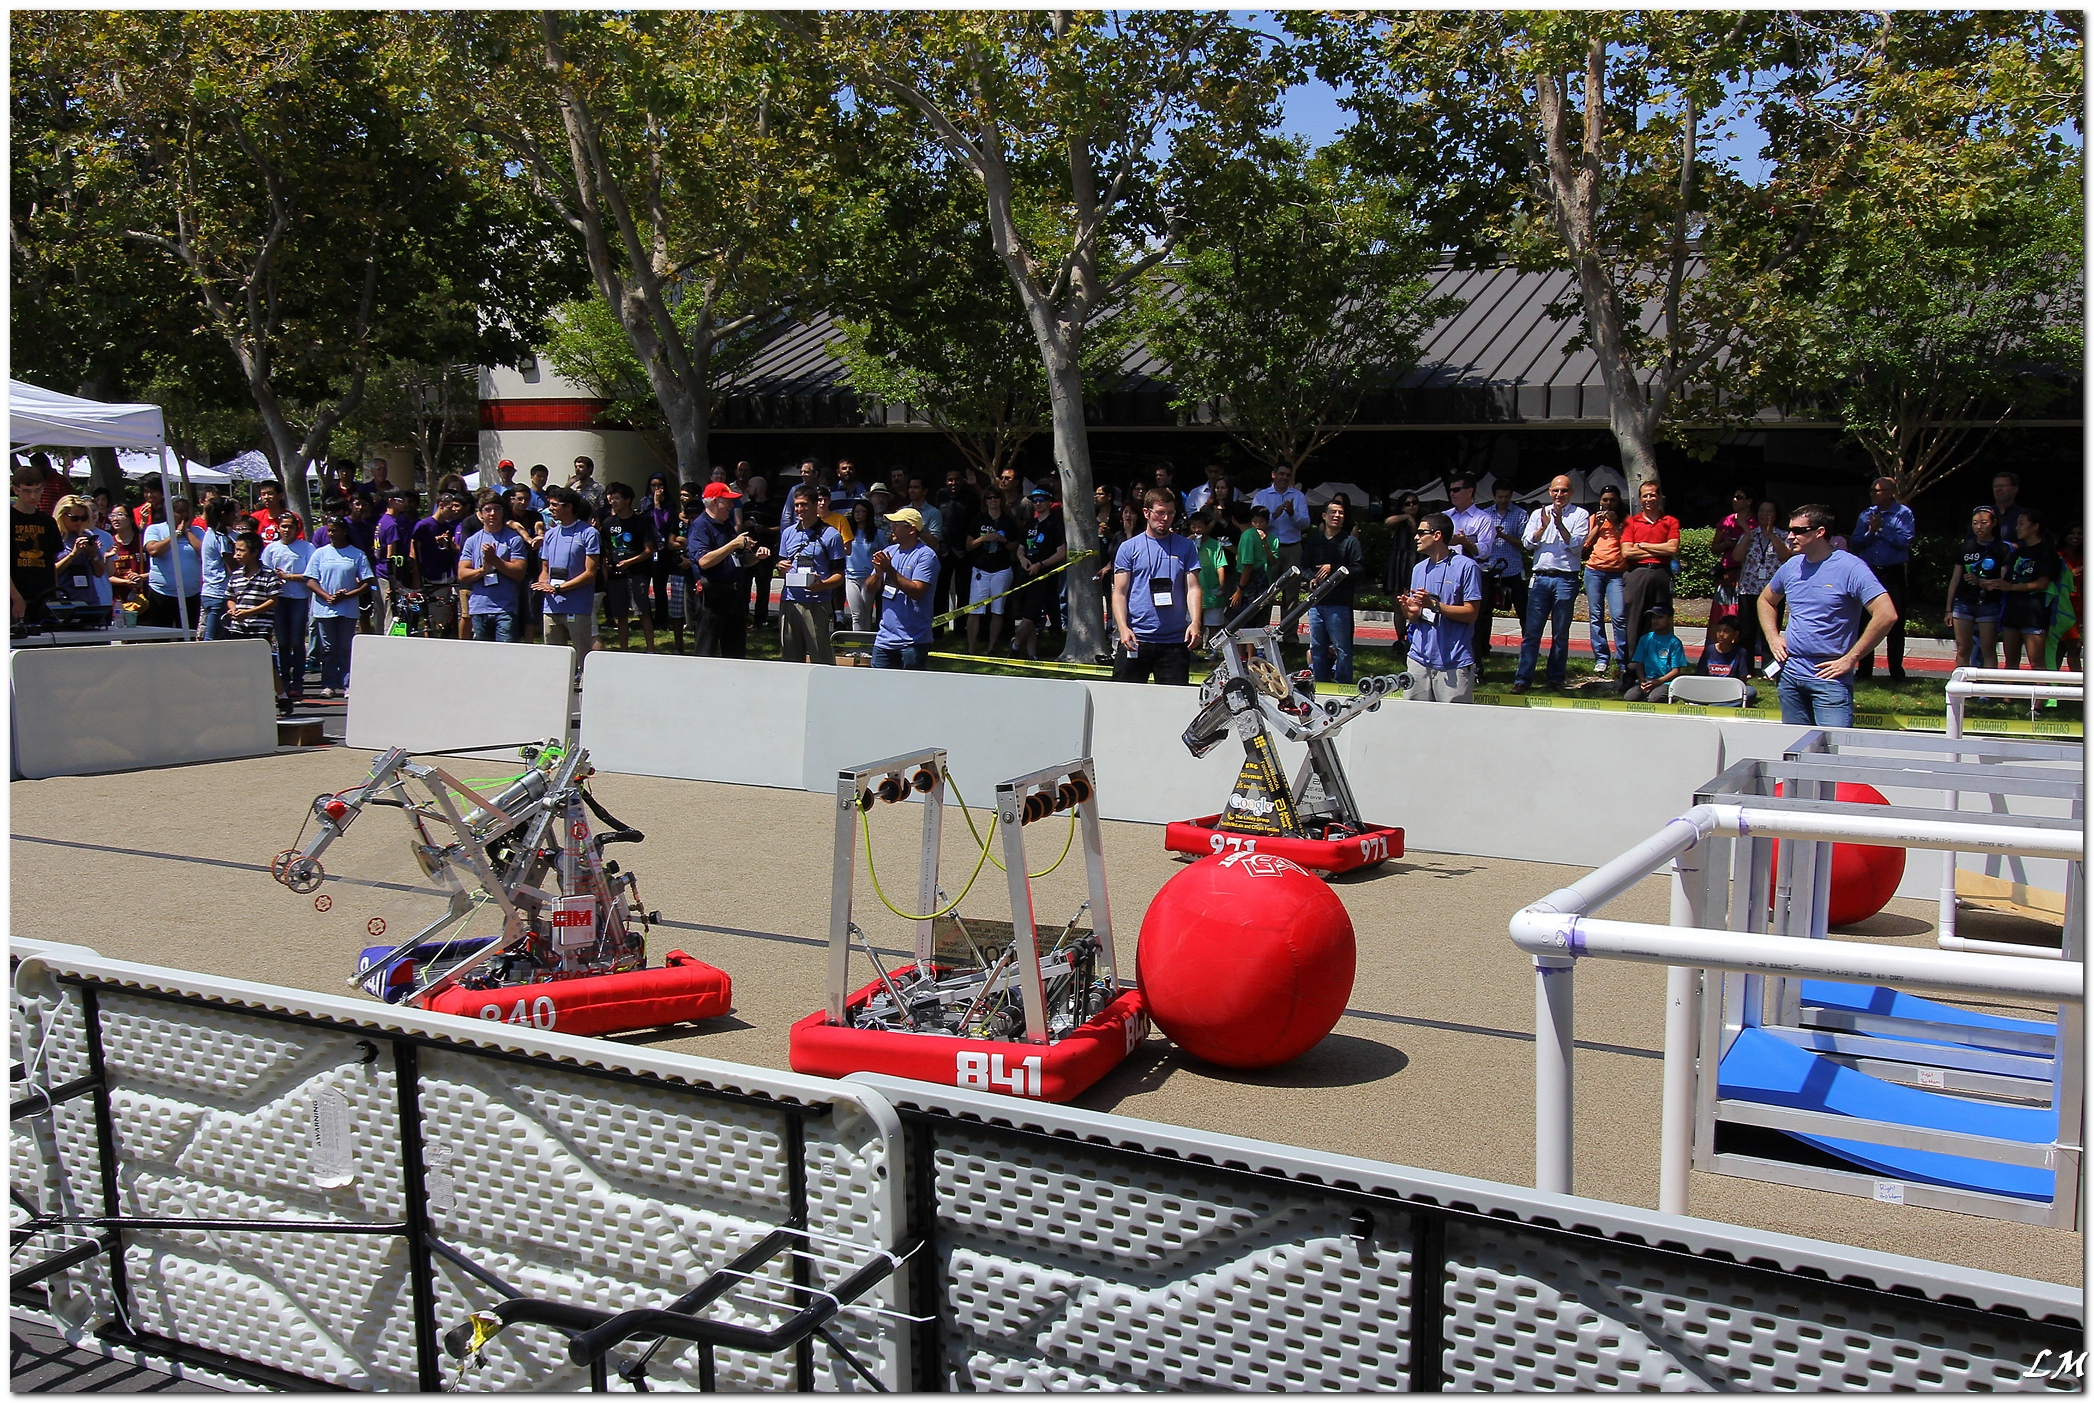 intuitive surgicals annual robonanza event features scores of silicon valley high school students representing first robotics teams who spend a day at intuitive company office photo